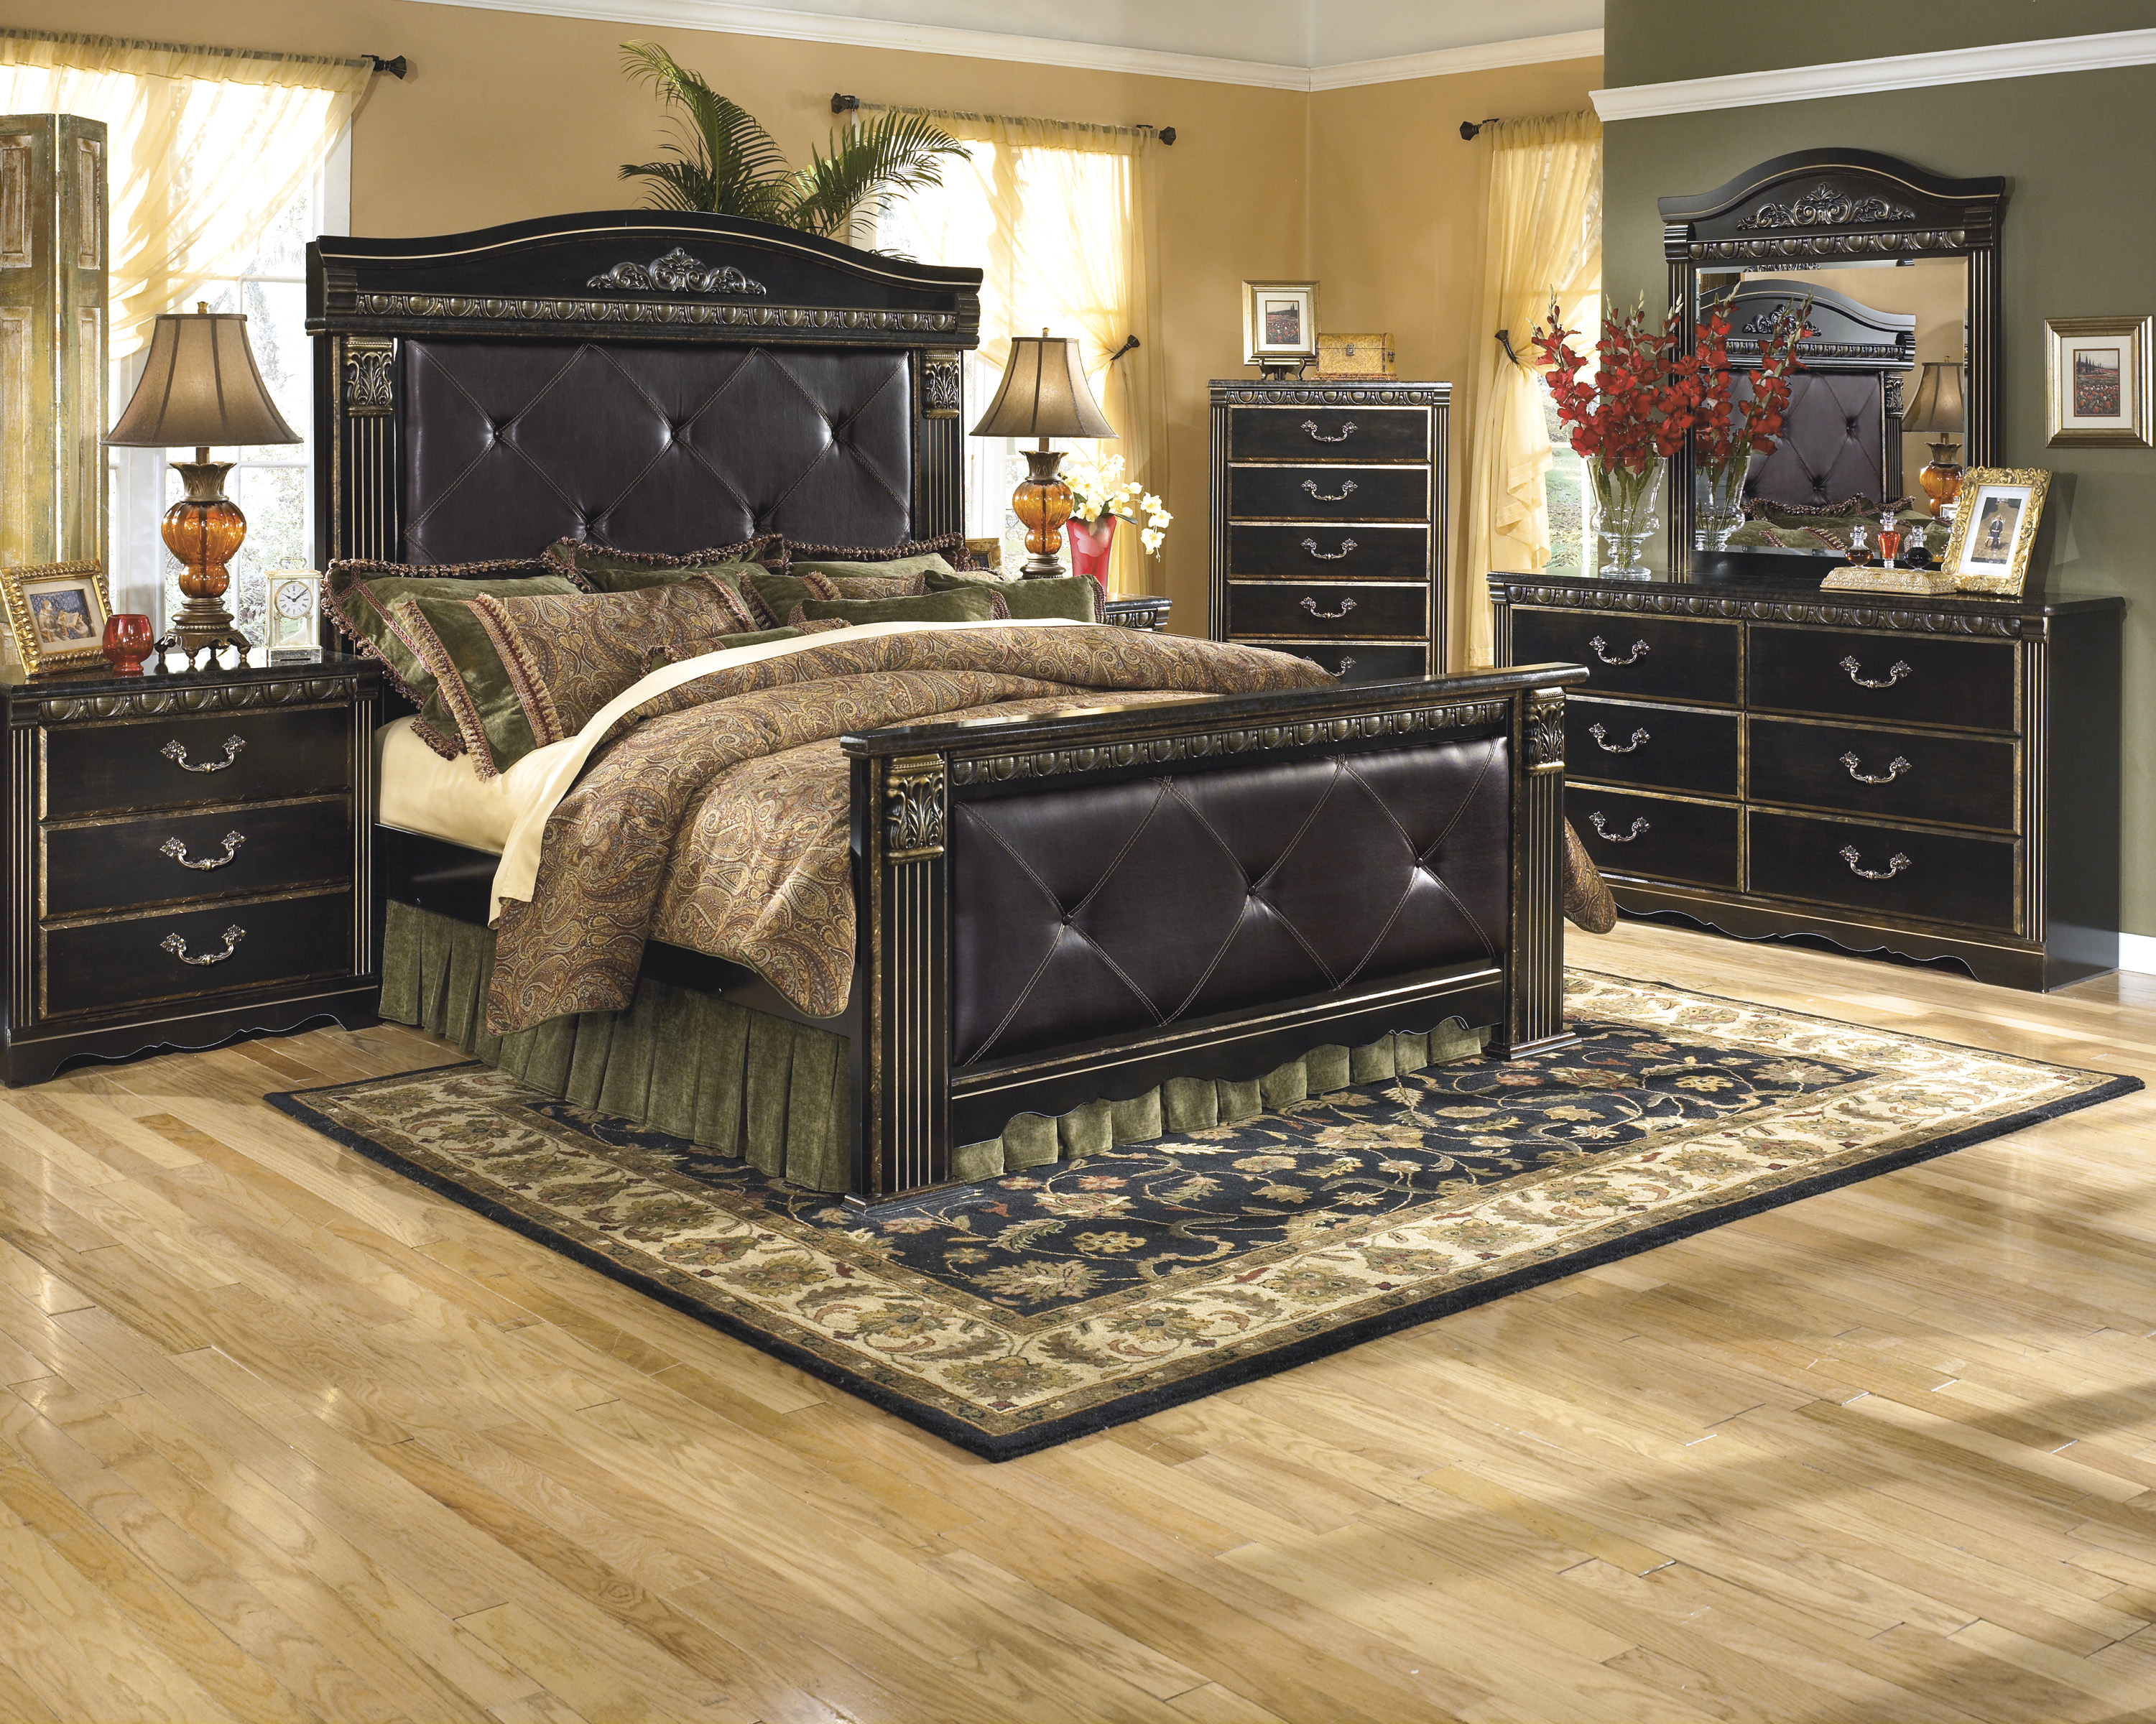 set panel bed dresser pic porter king black ashley furniture by bedroom dressers